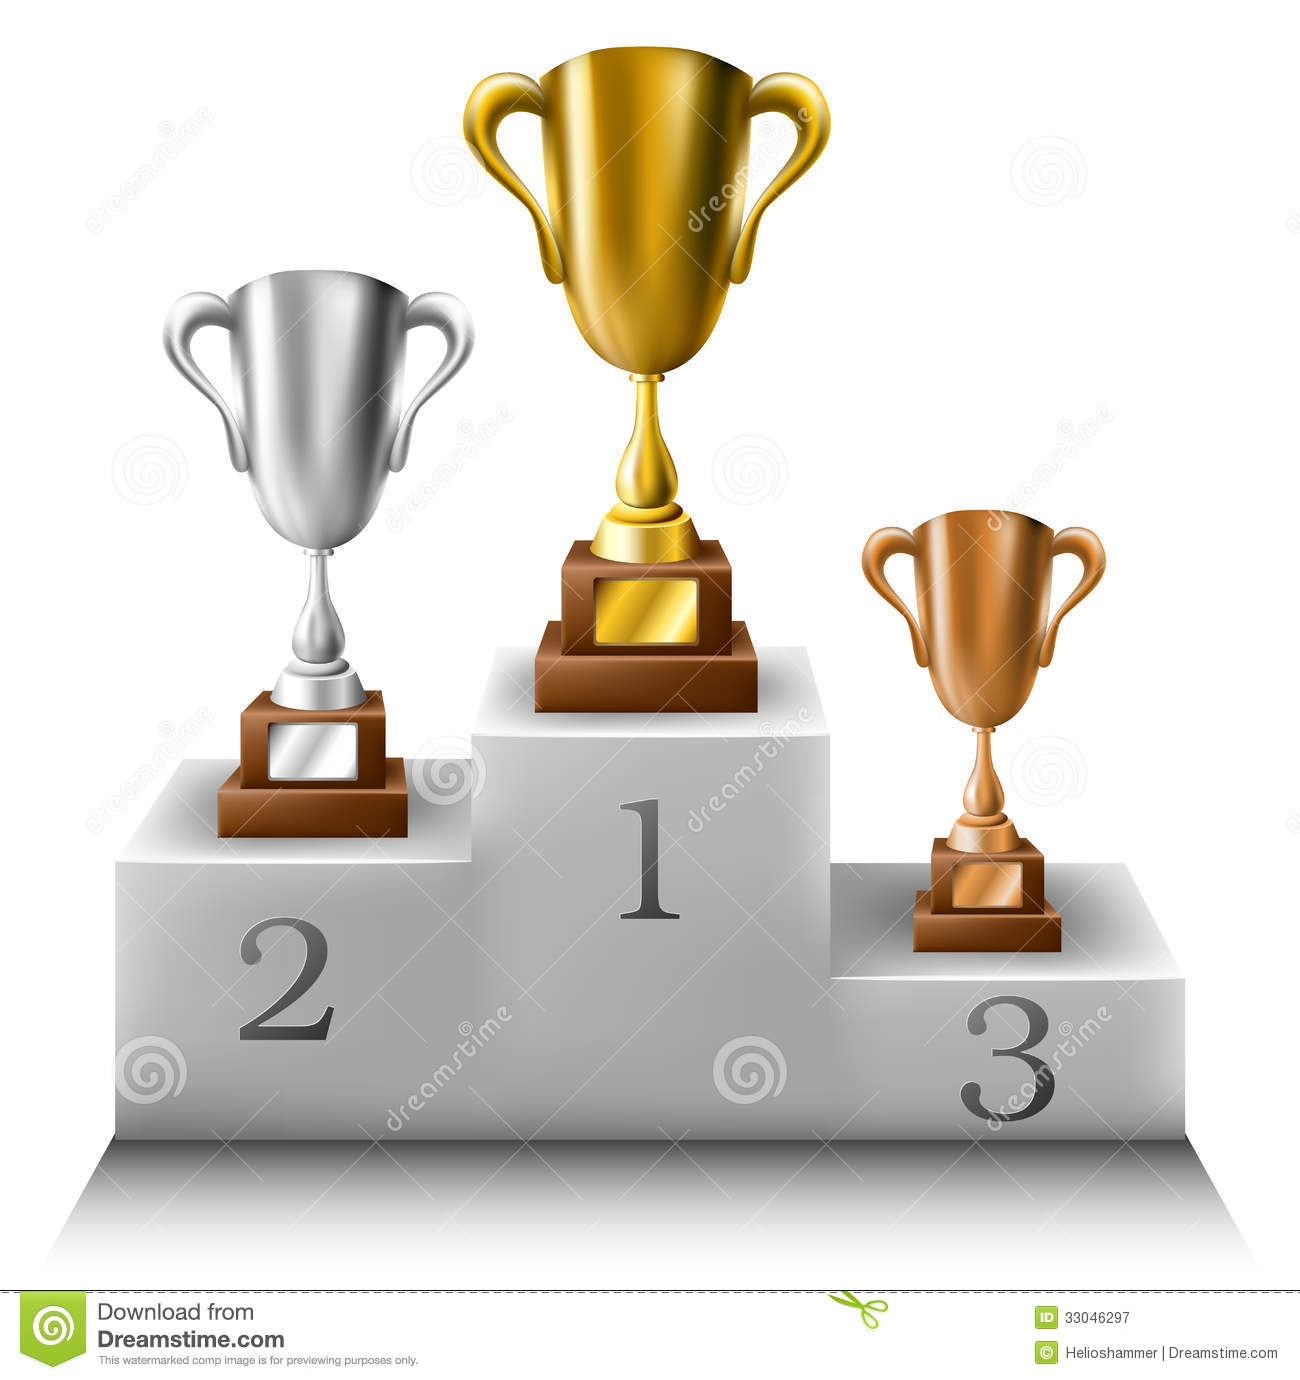 Royalty Free Stock Photography Trophy Set Winners Podium Gold Silver Bronze Image33046297 likewise Event 1967051 additionally 20293 besides Convocation as well Playvideo. on award ceremony background